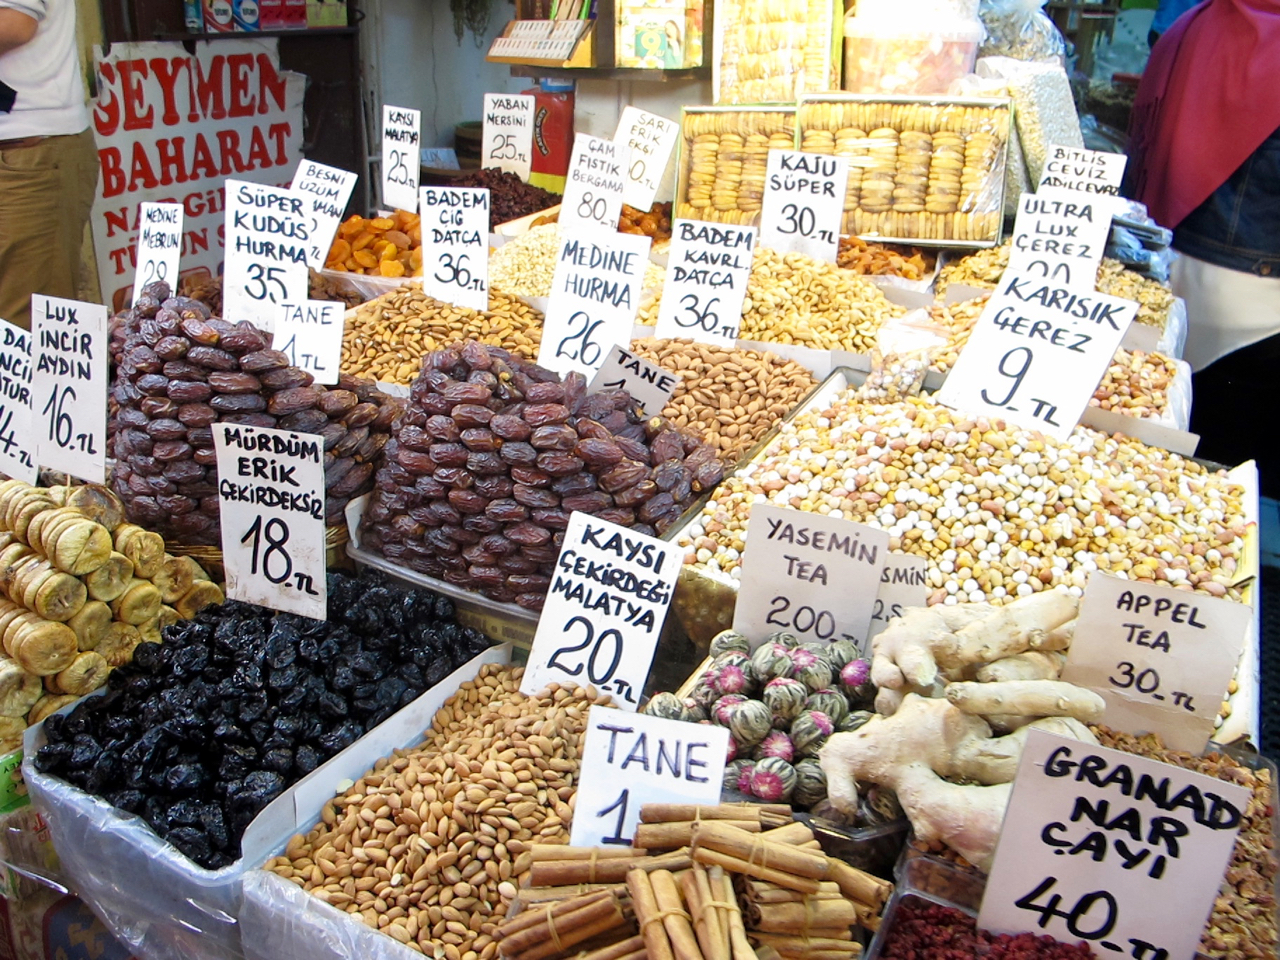 What to see and do in Istanbul? Shop, sniff, eat